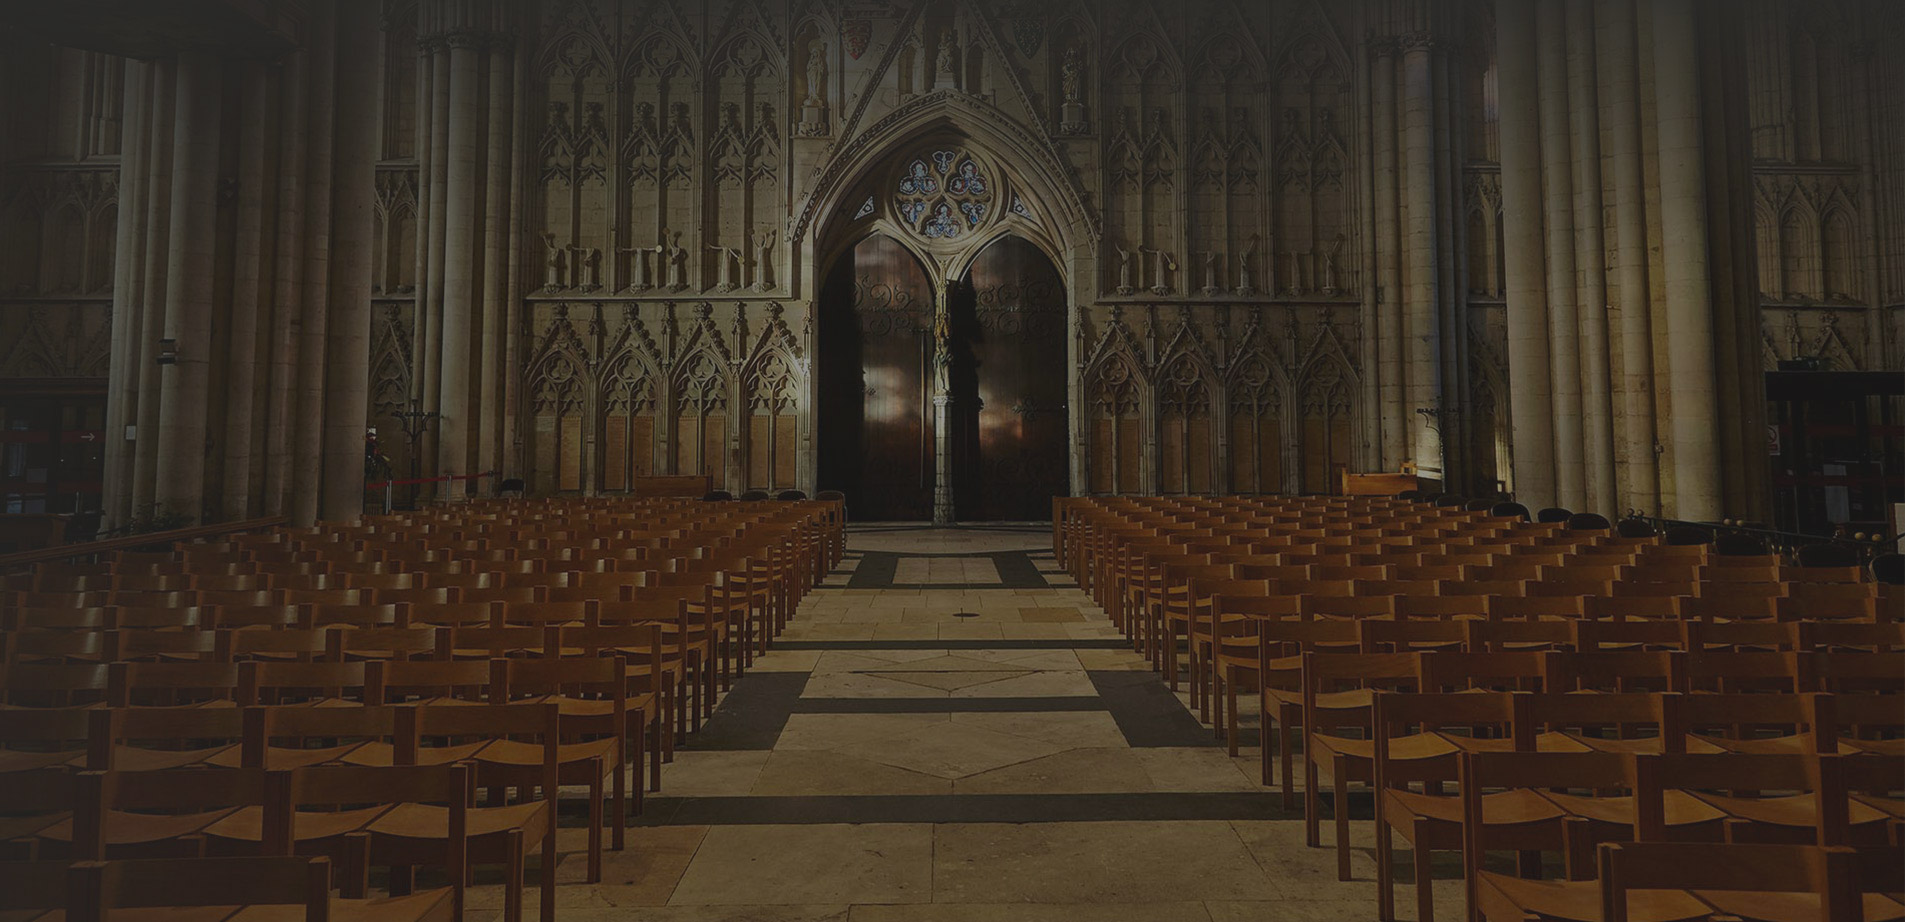 Silence in the Minster